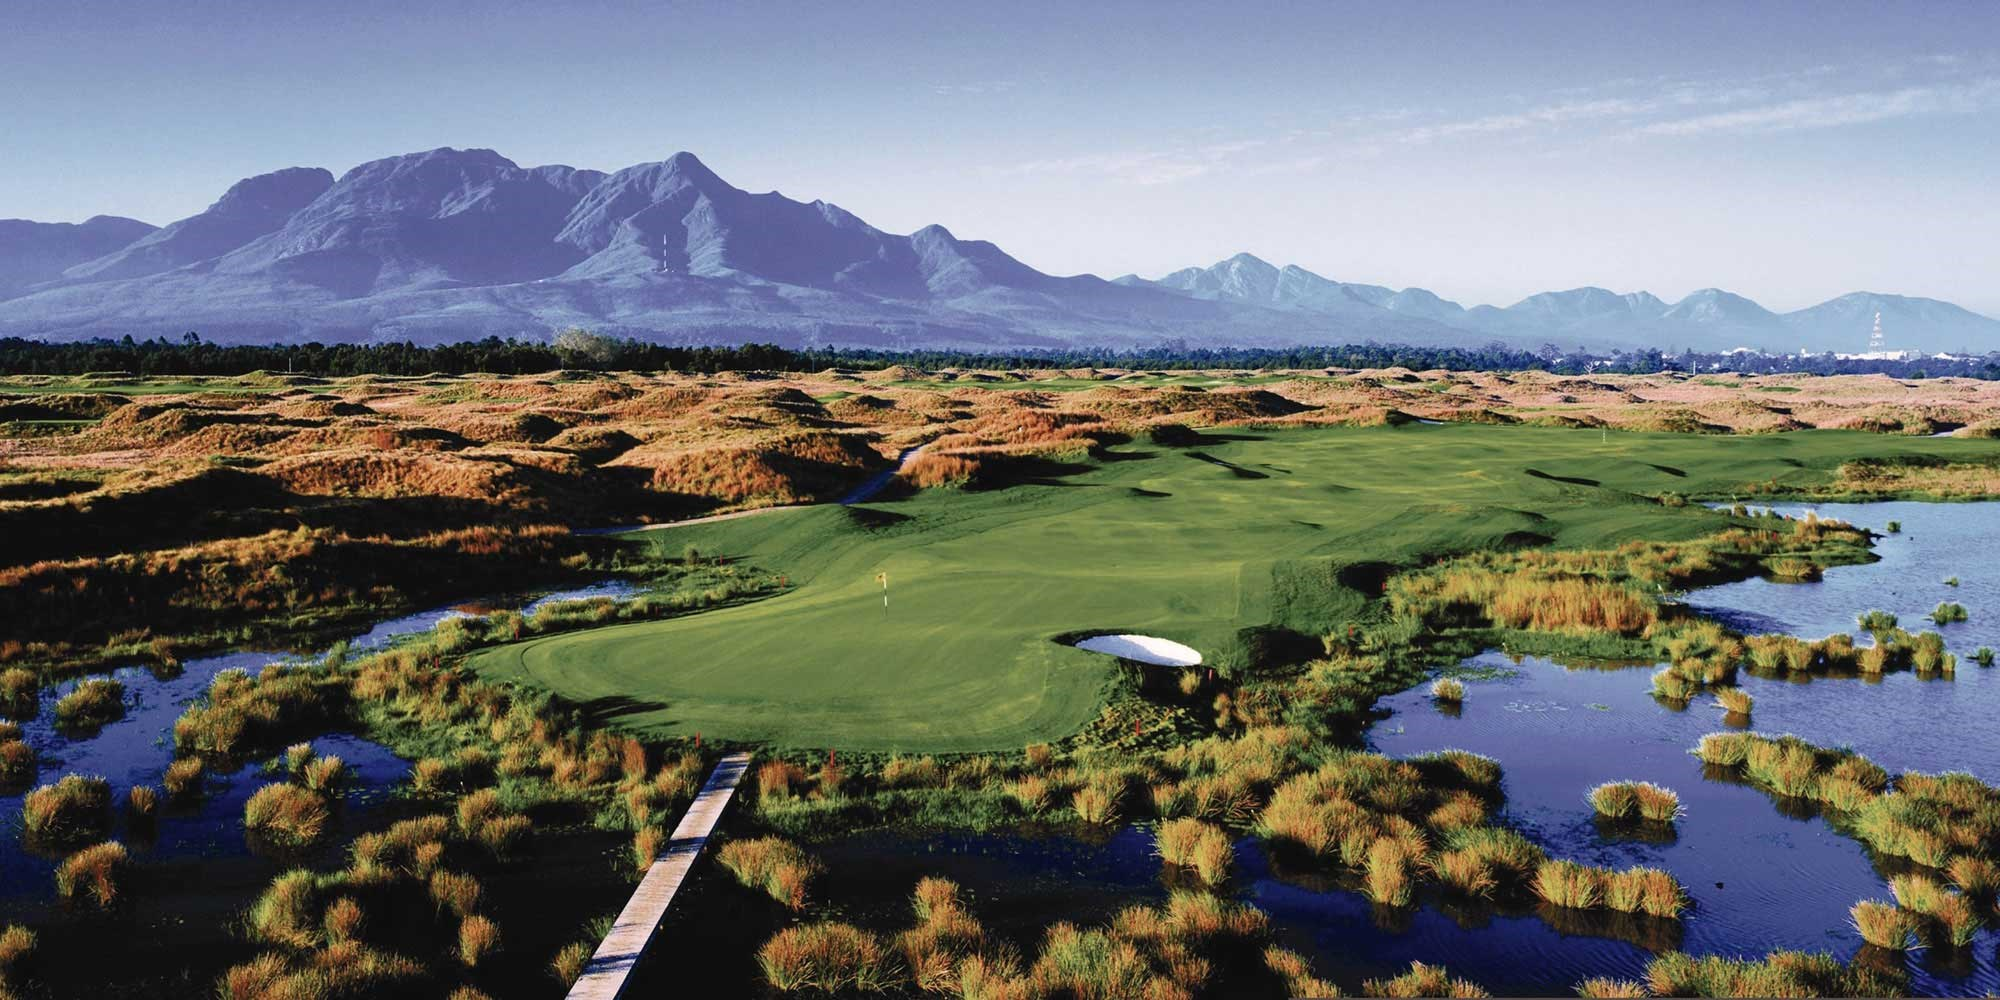 Best of South Africa 'Golf & Safari' - Fully Escorted Tour by GOLFSelect (October 13-26, 2017)